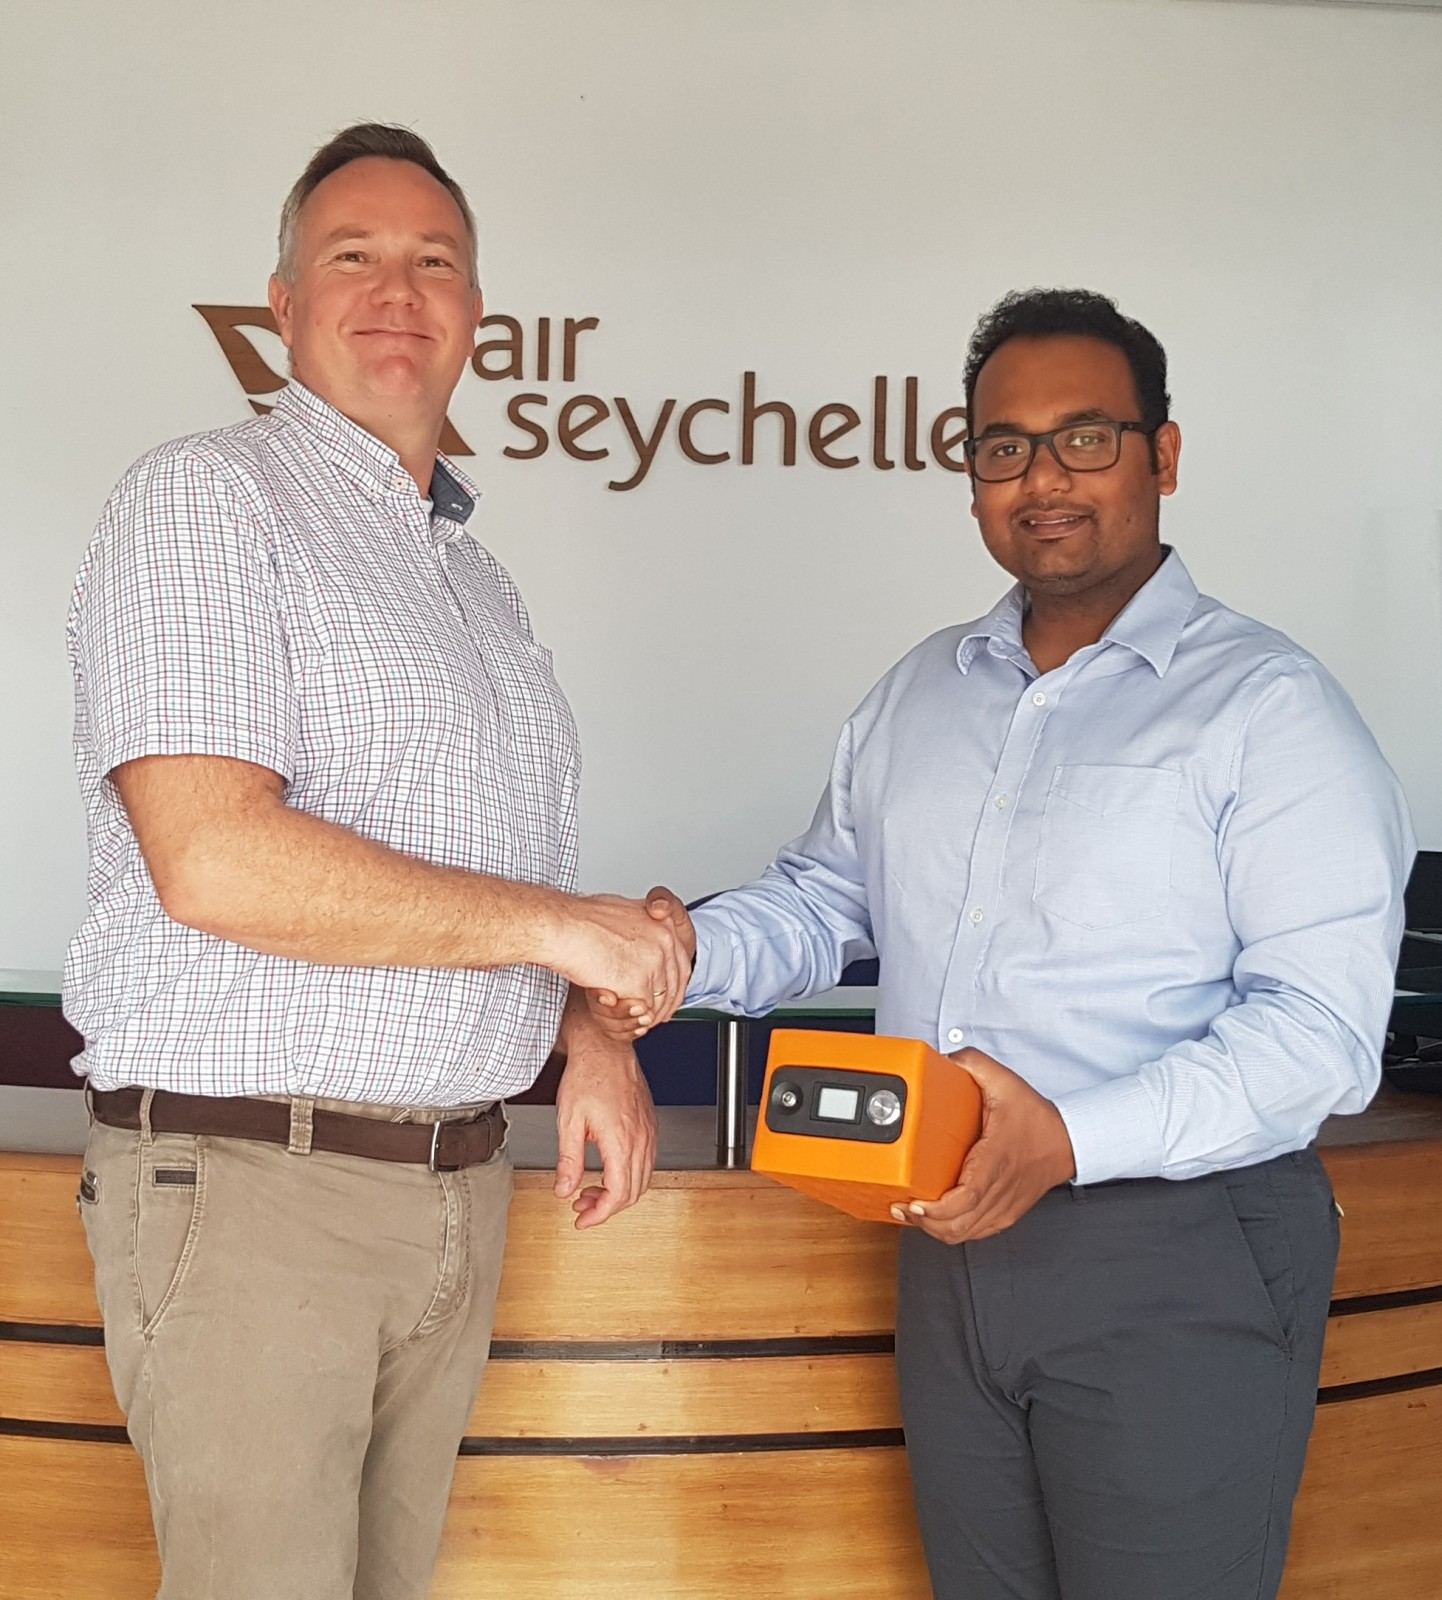 Air Seychelles selects AirFi to offer new wireless streaming in-flight entertainment experience